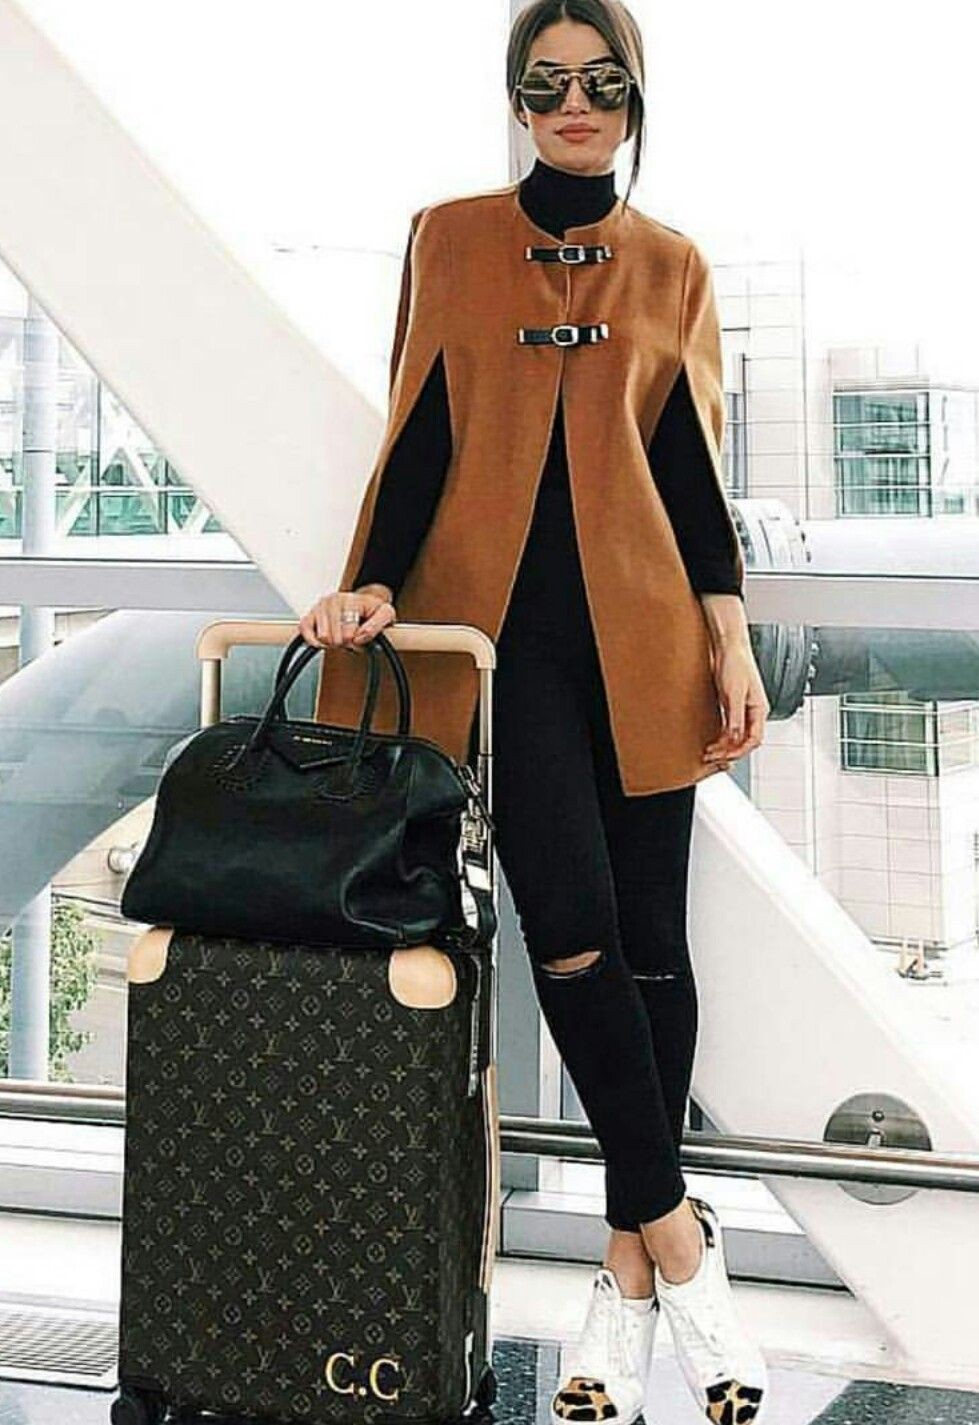 Brown and black cute collections with fashion accessory, trousers, overcoat